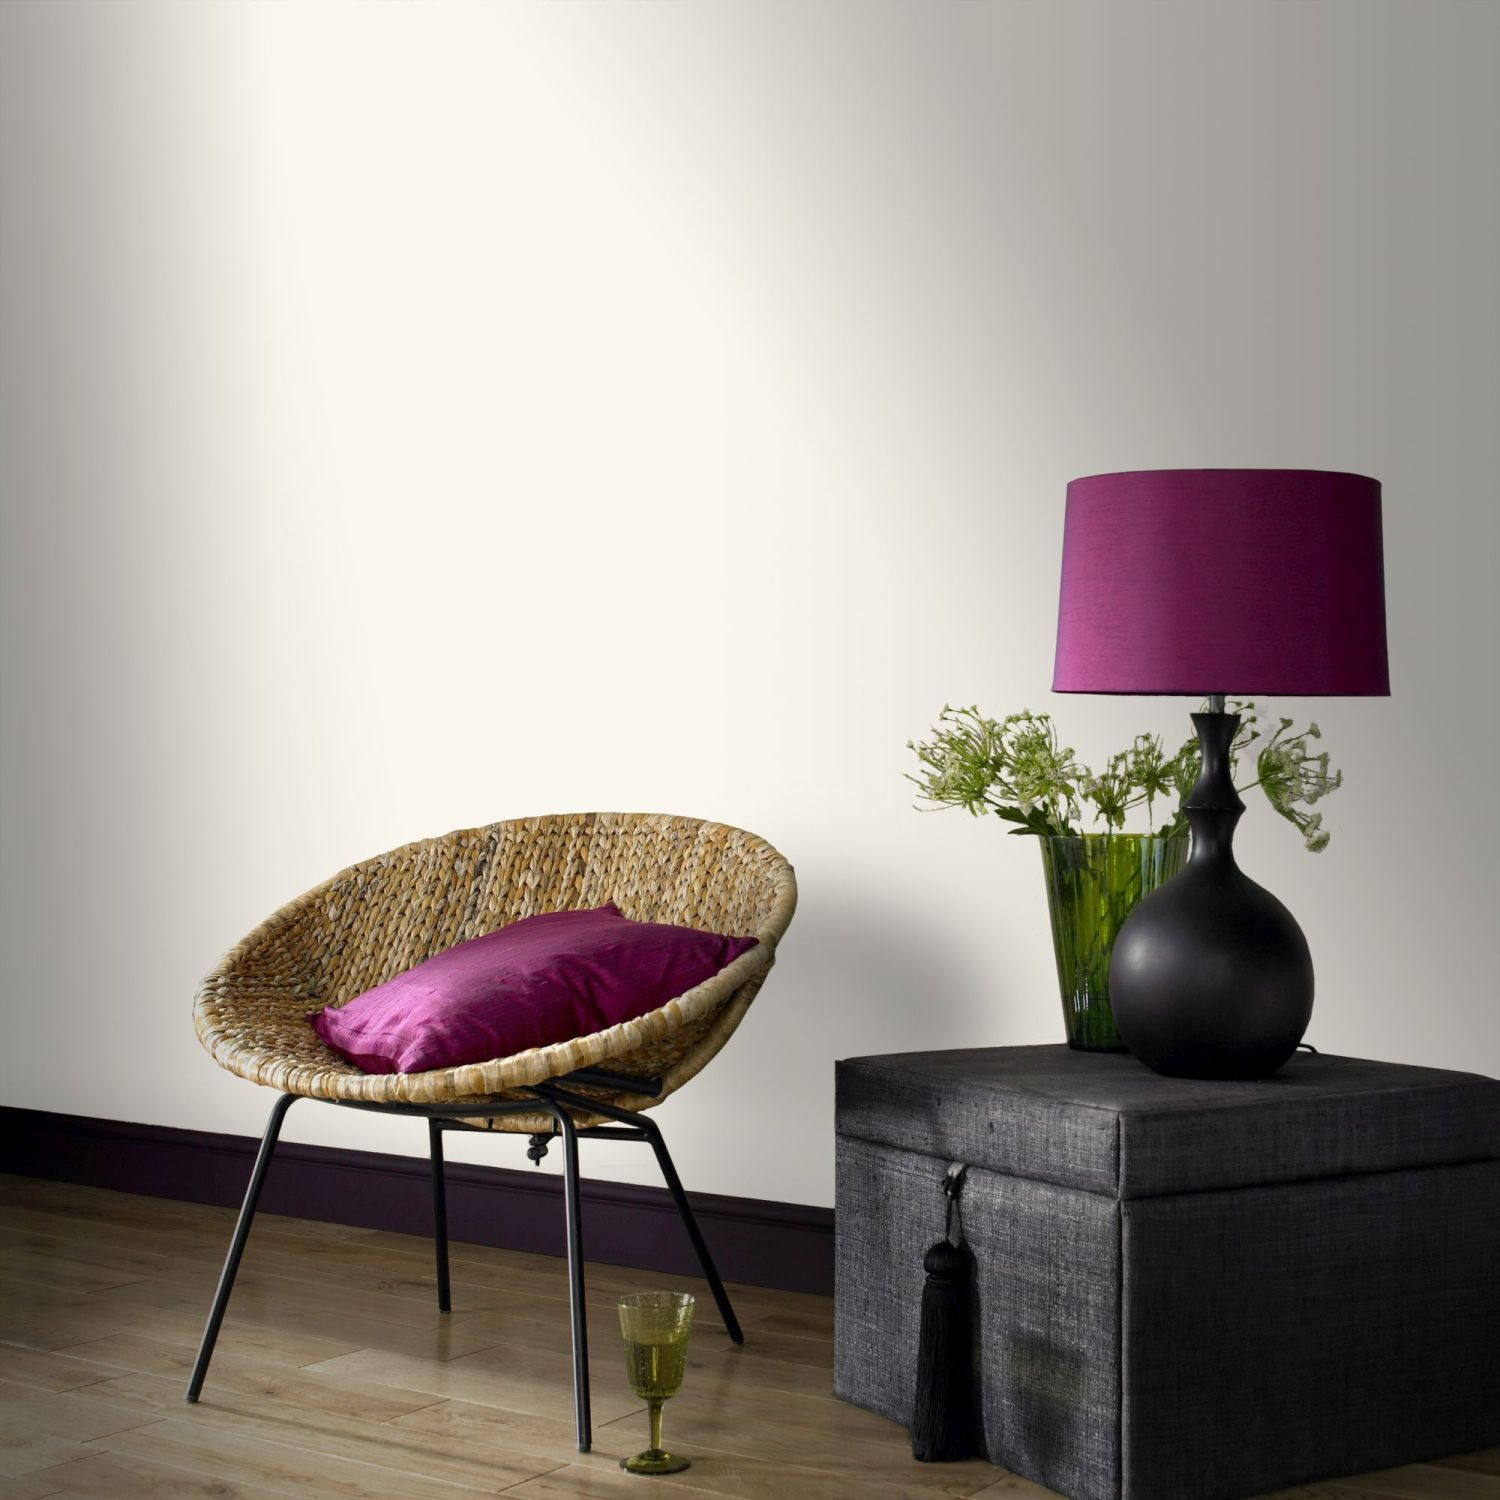 Buy cheap designer wallpaper compare products prices for for Cheap modern wallpaper